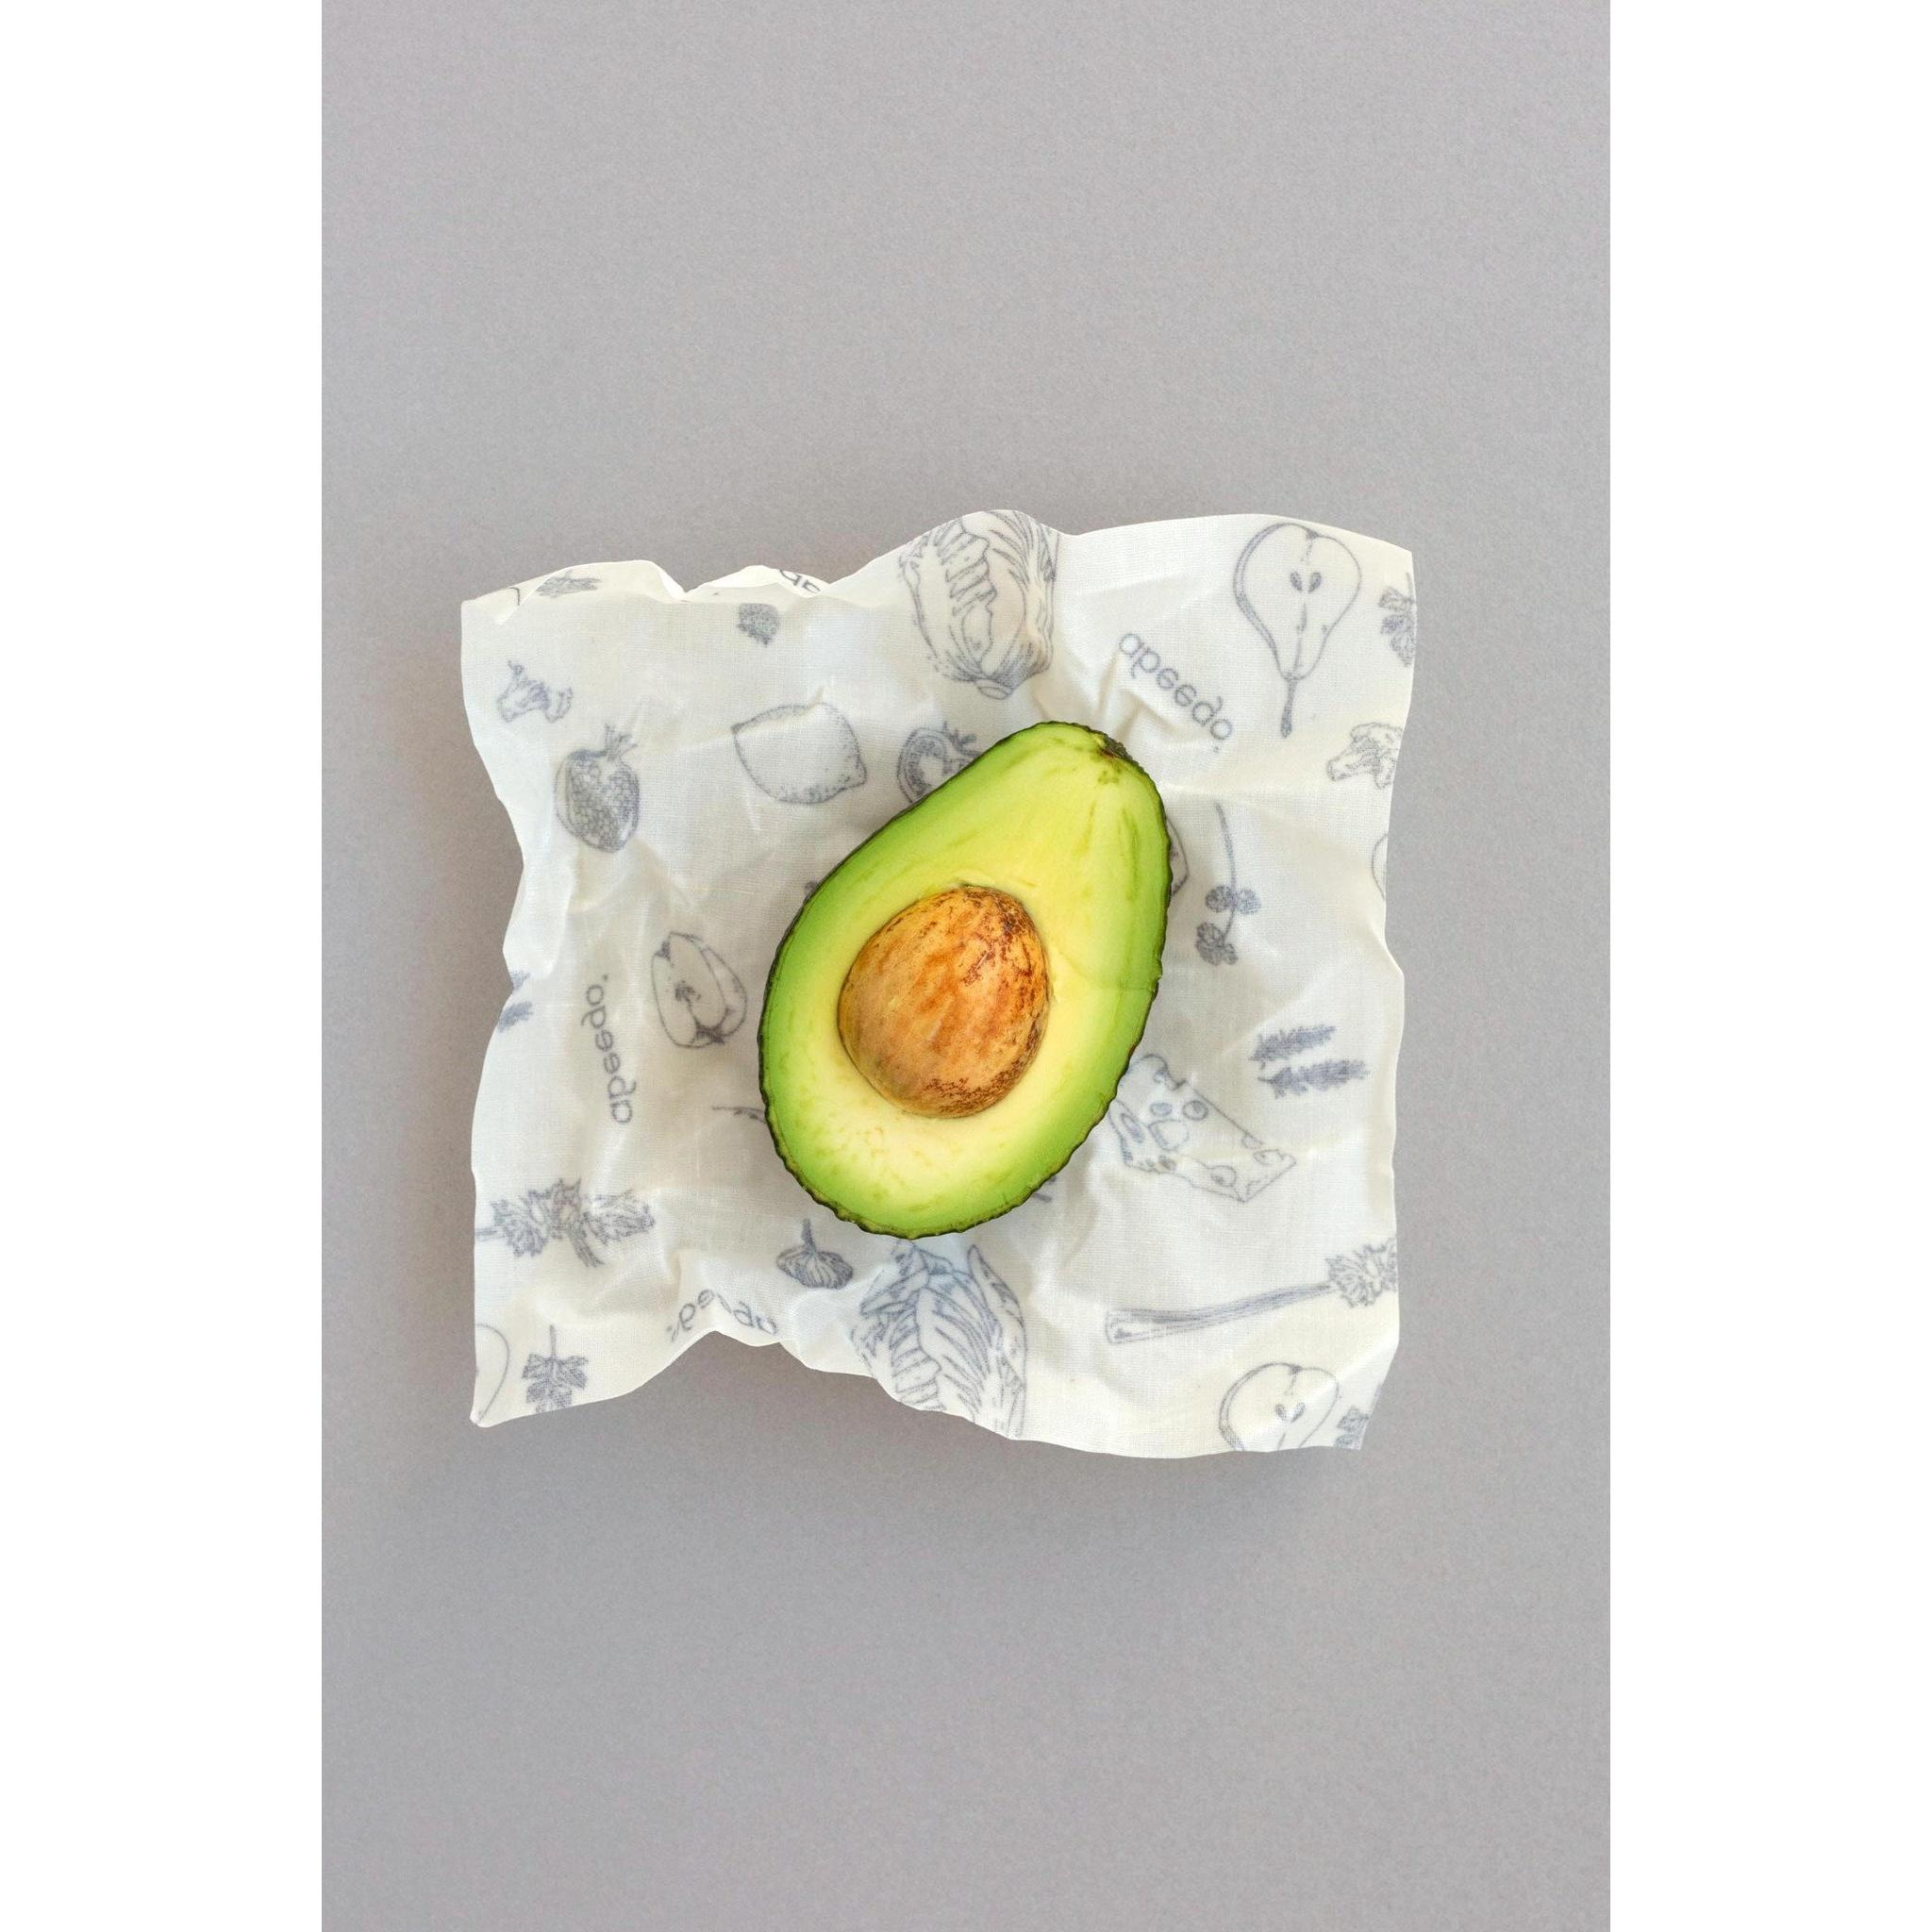 Abeego Beeswax Small Food Wraps - Pkg of 6